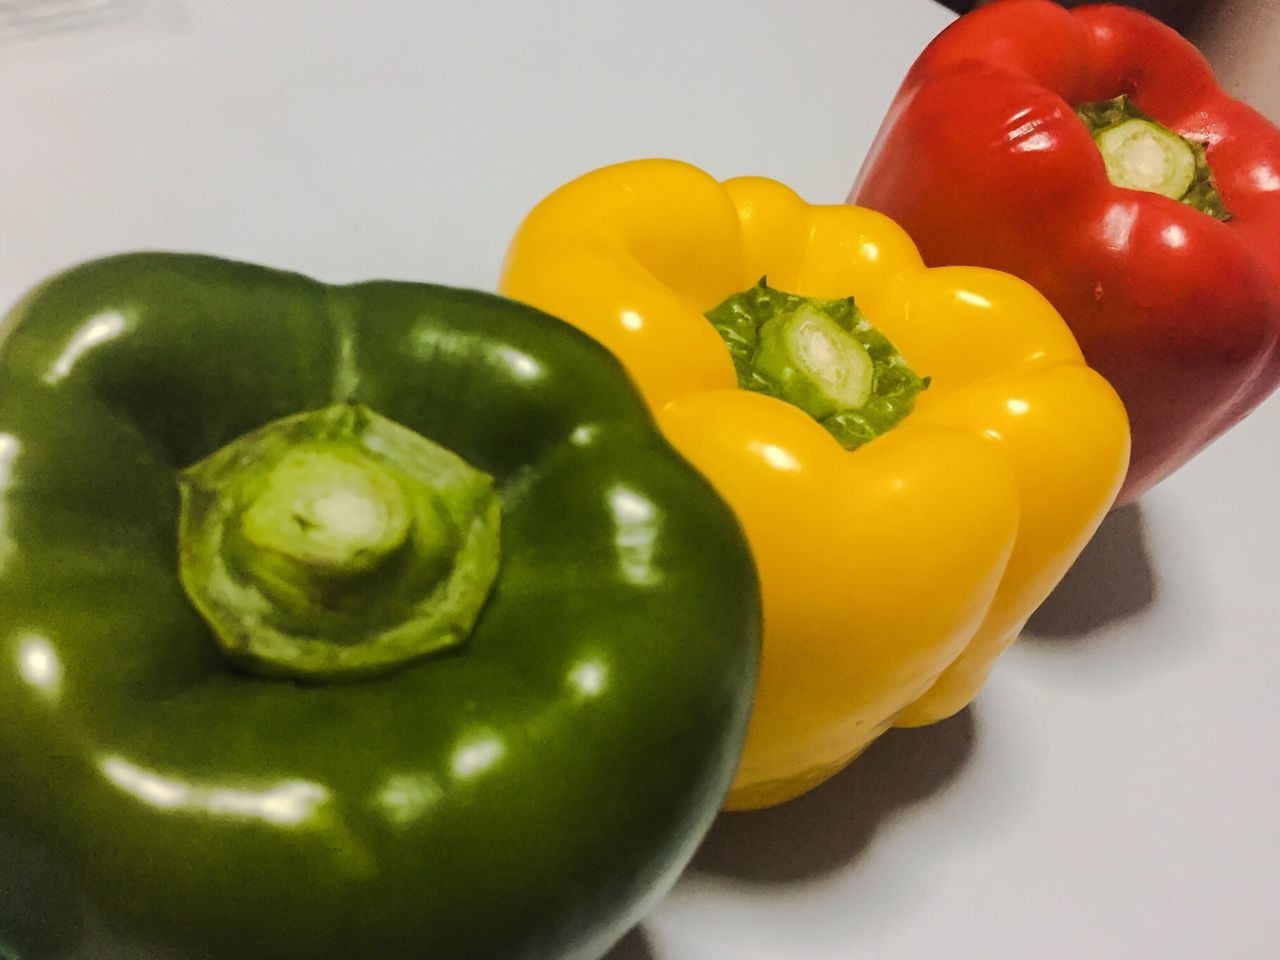 Bell Pepper Yellow Vegetable Red Freshness Healthy Eating No People Close-up Red Bell Pepper Food Healthy Green Color Day Green Bell Pepper Yellow Bell Pepper Cooking Freshness Fresh Produce Healthy Food Three Capsicum